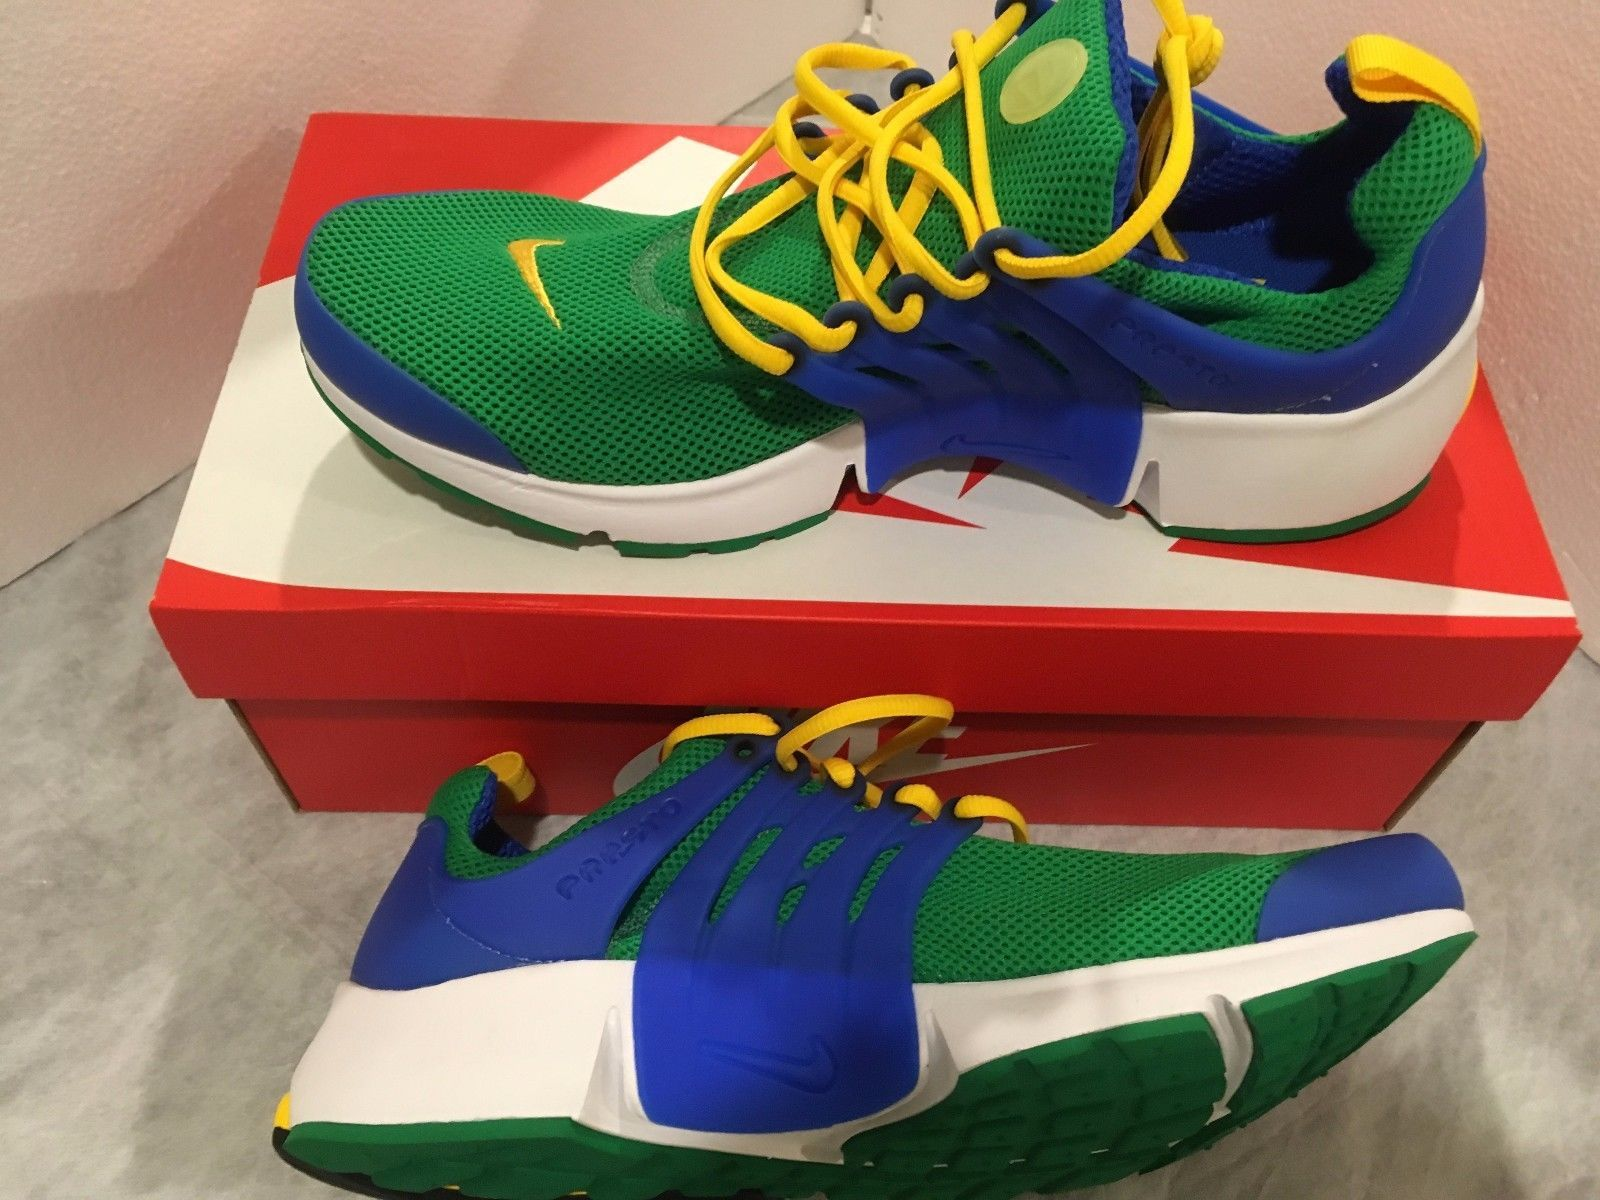 7129491bd285 NIKE AIR PRESTO ESSENTIAL GREEN BLUE YELLOW WHITE RUNNING SHOES 848187 SIZE  13